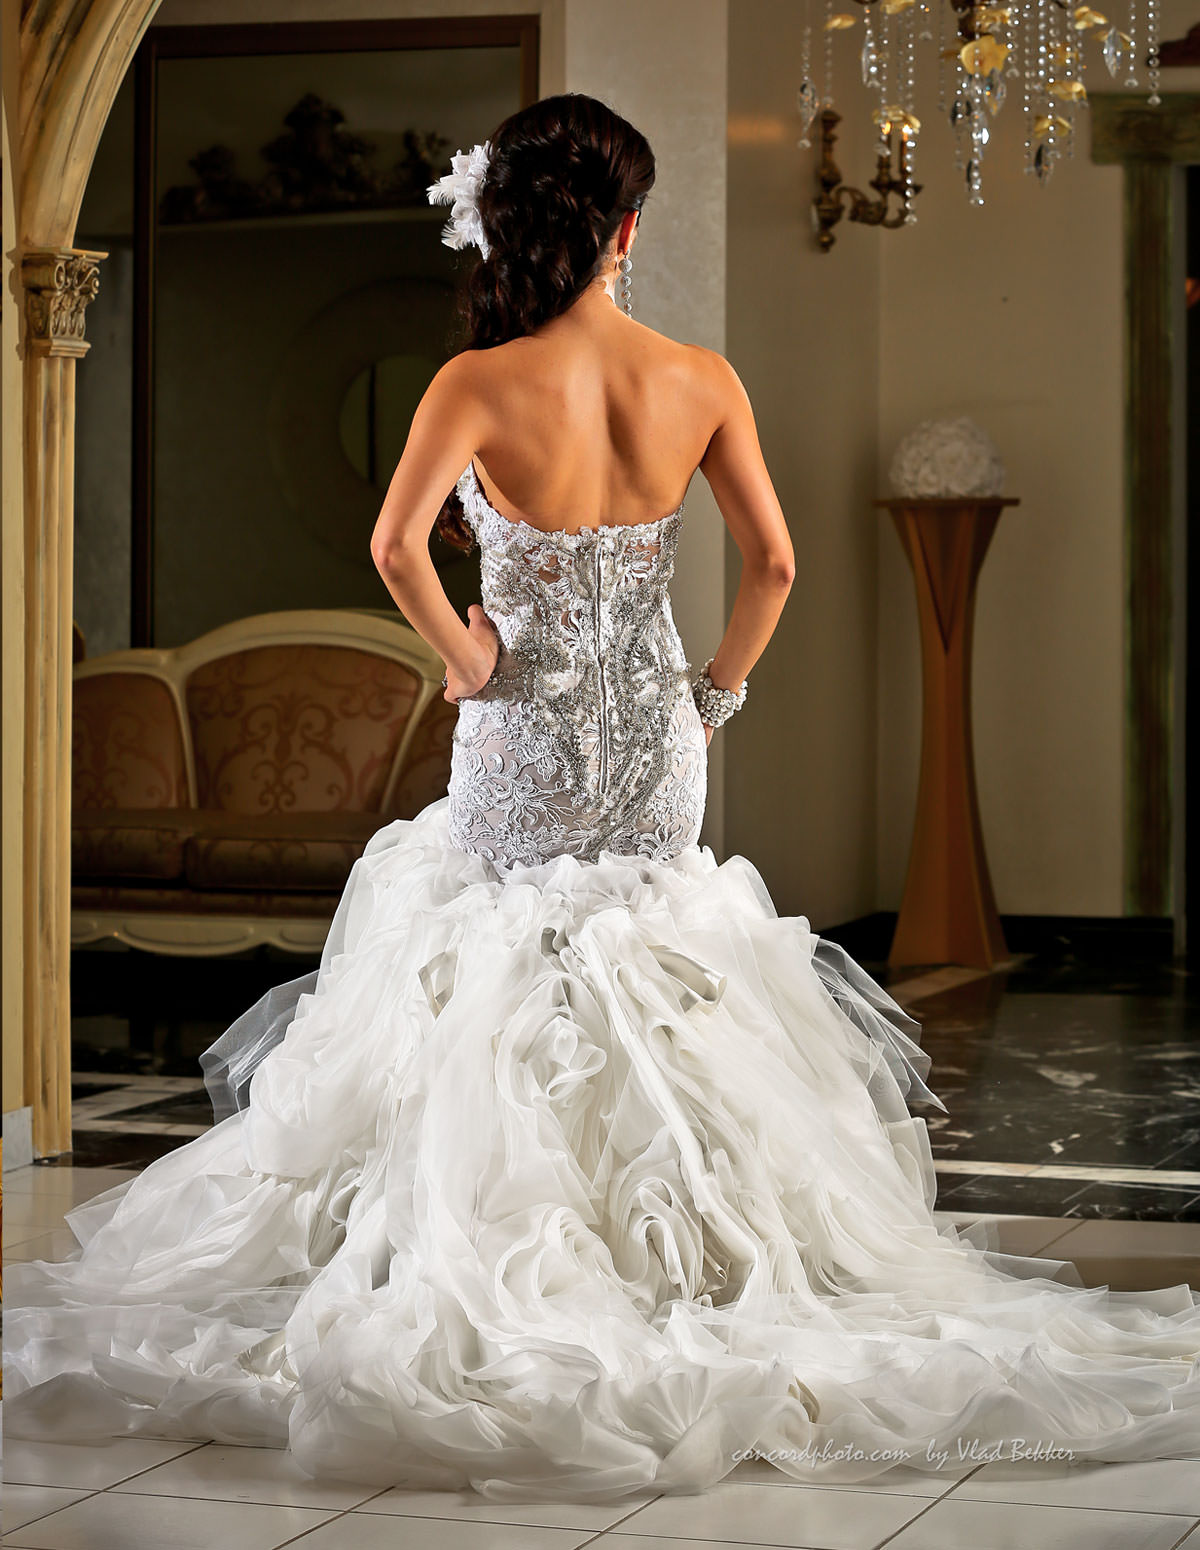 Anita Wedding Dress